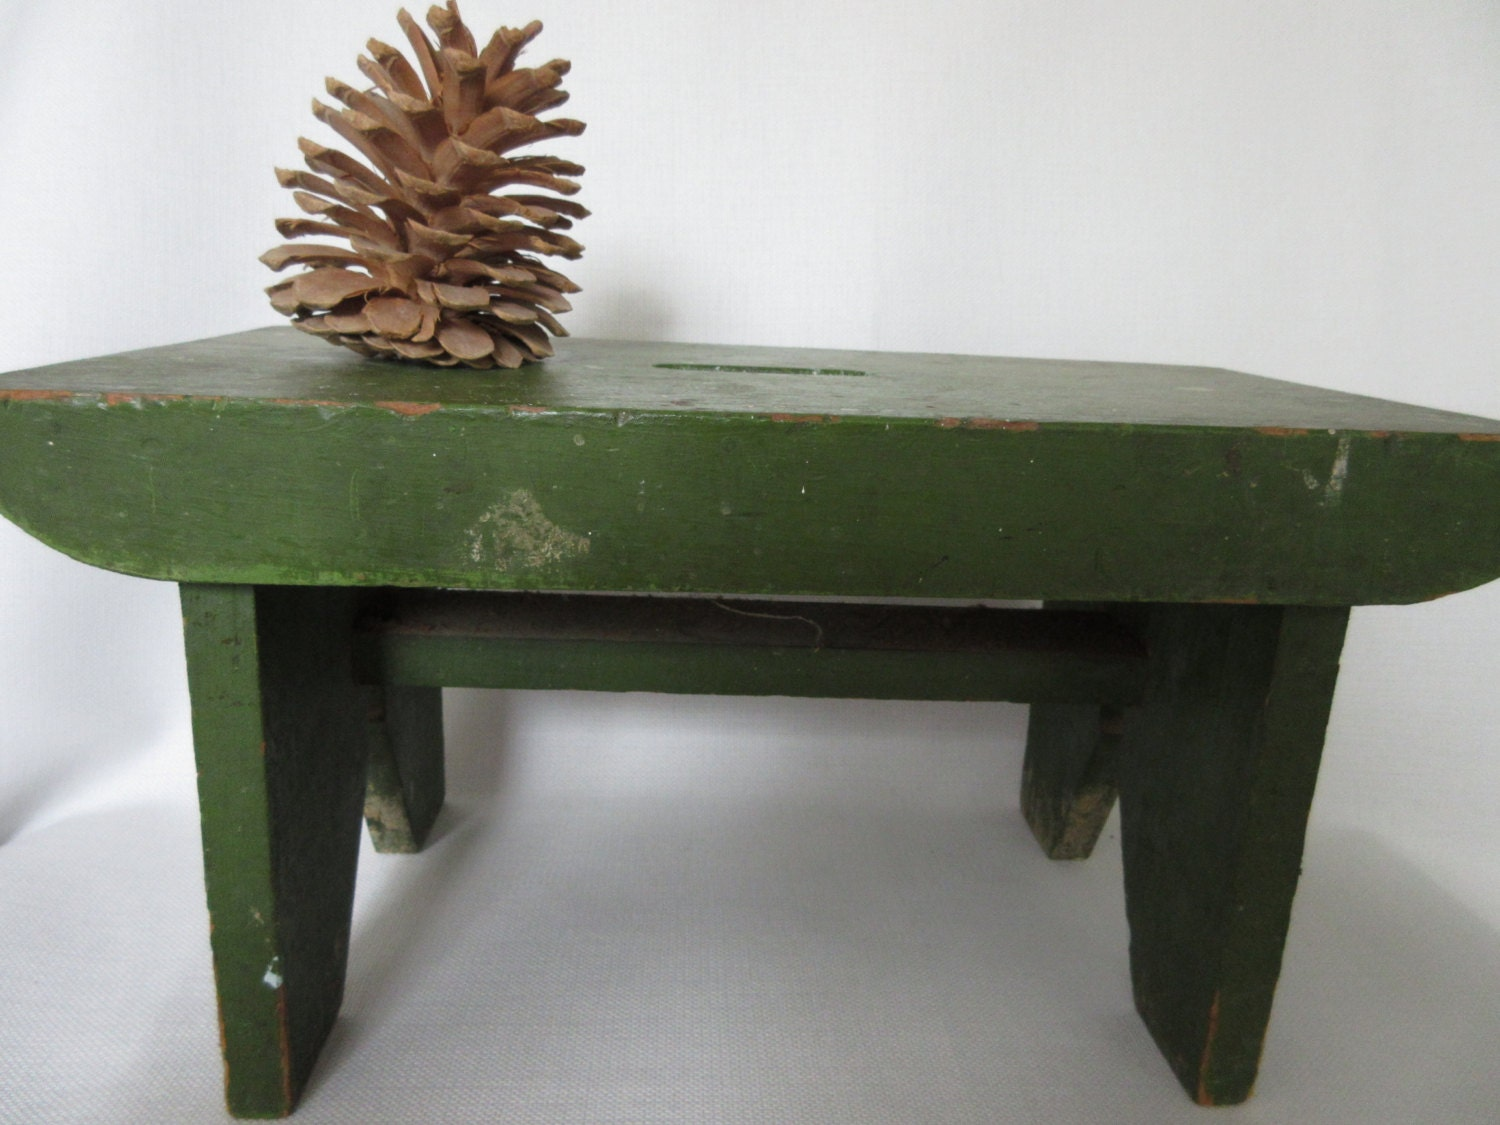 Vintage Green Wooden Step Stool With Handle Grip By